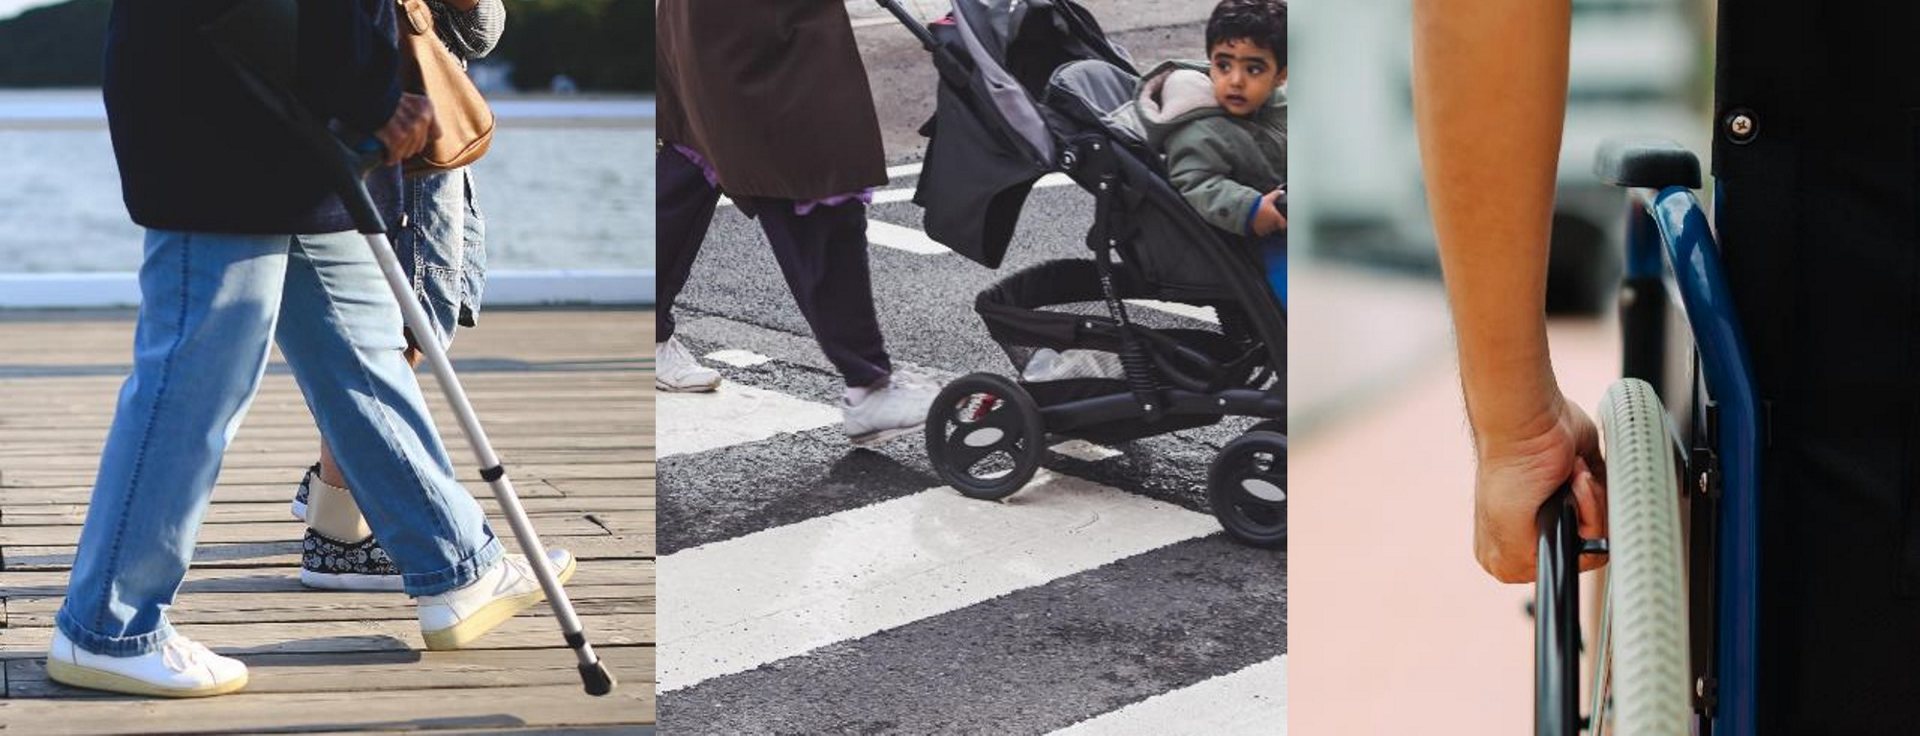 """At any one time 40% of us experience some restriction in our mobility – be it through injury, as a wheelchair user or simply a parent with a pushchair,"" says Adrien Muller from DYbyDX."